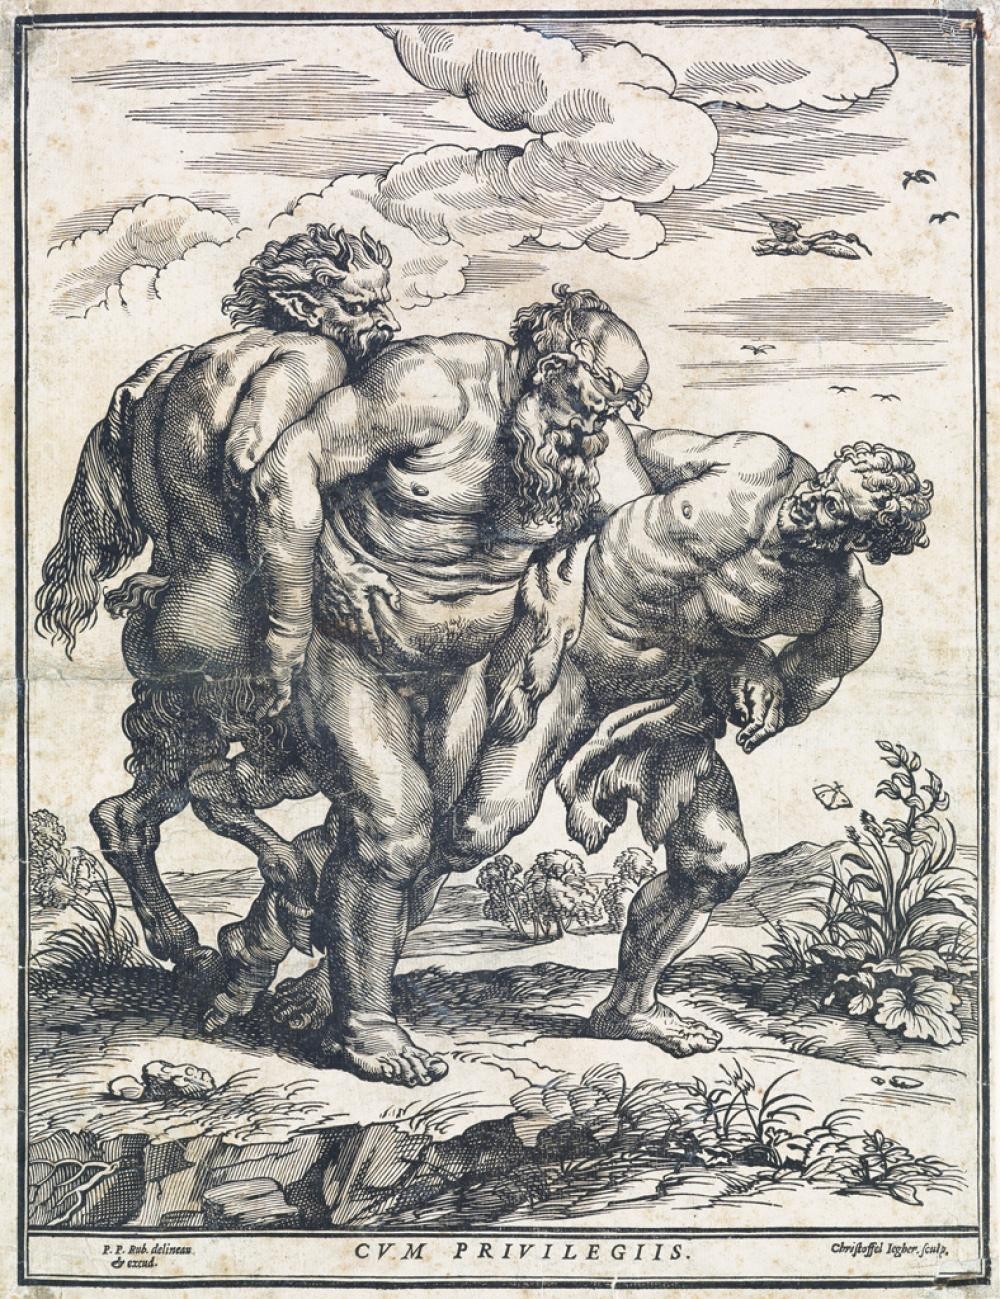 CHRISTOFFEL JEGHER (after Rubens) Silenus Accompanied by a Satyr and a Faun